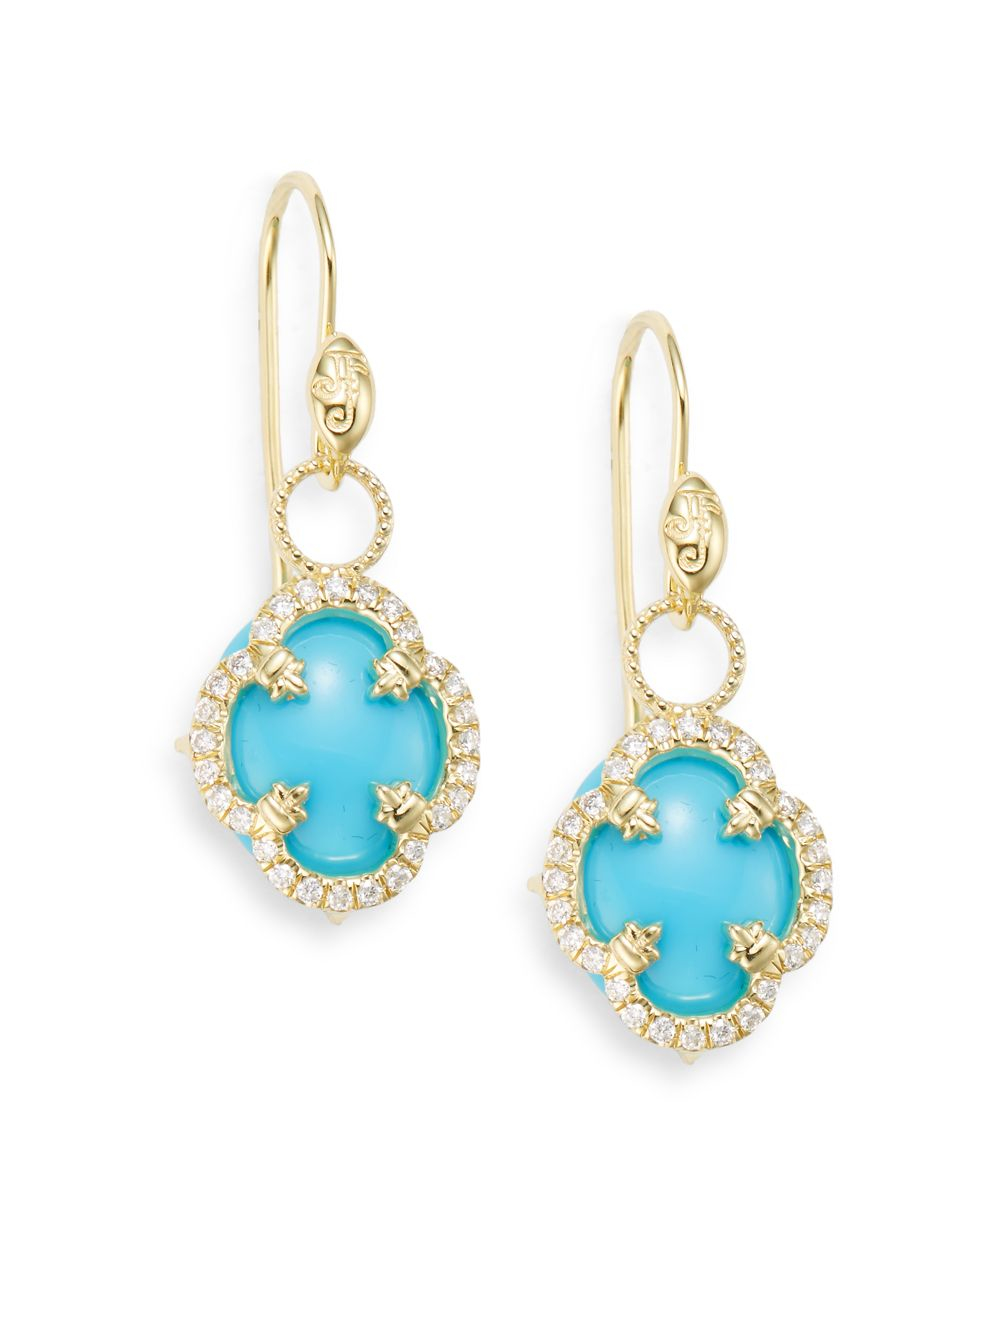 Jude Frances Moroccan 18k White Gold Turquoise/Diamond Drop Earrings RVDRGykV16